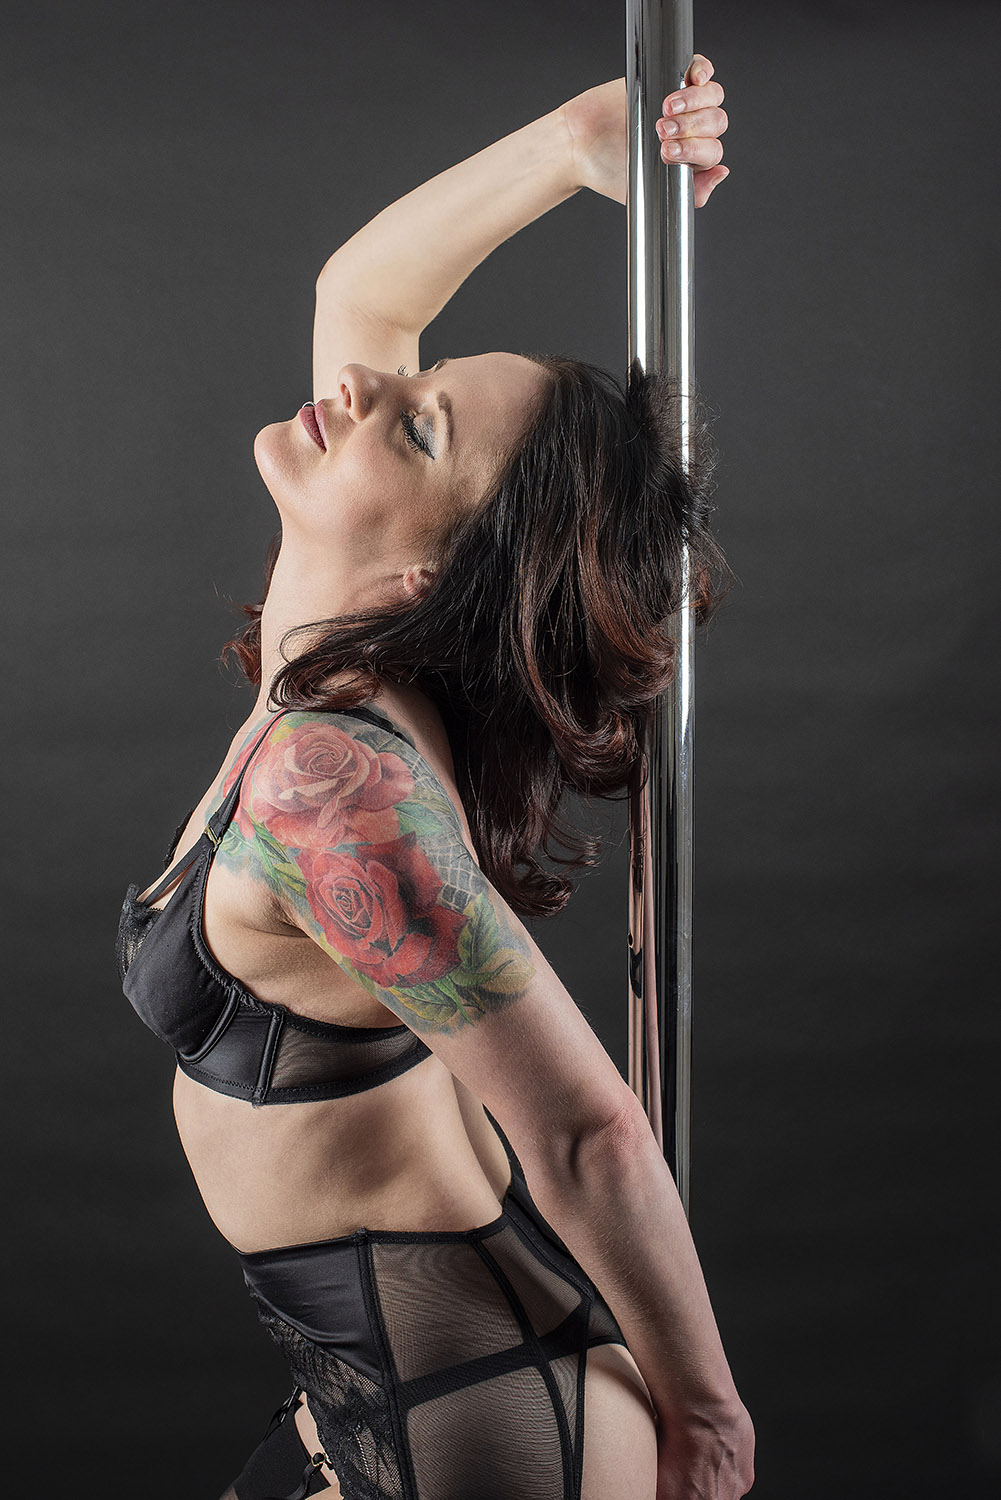 Pole dance portrait photography Brighton